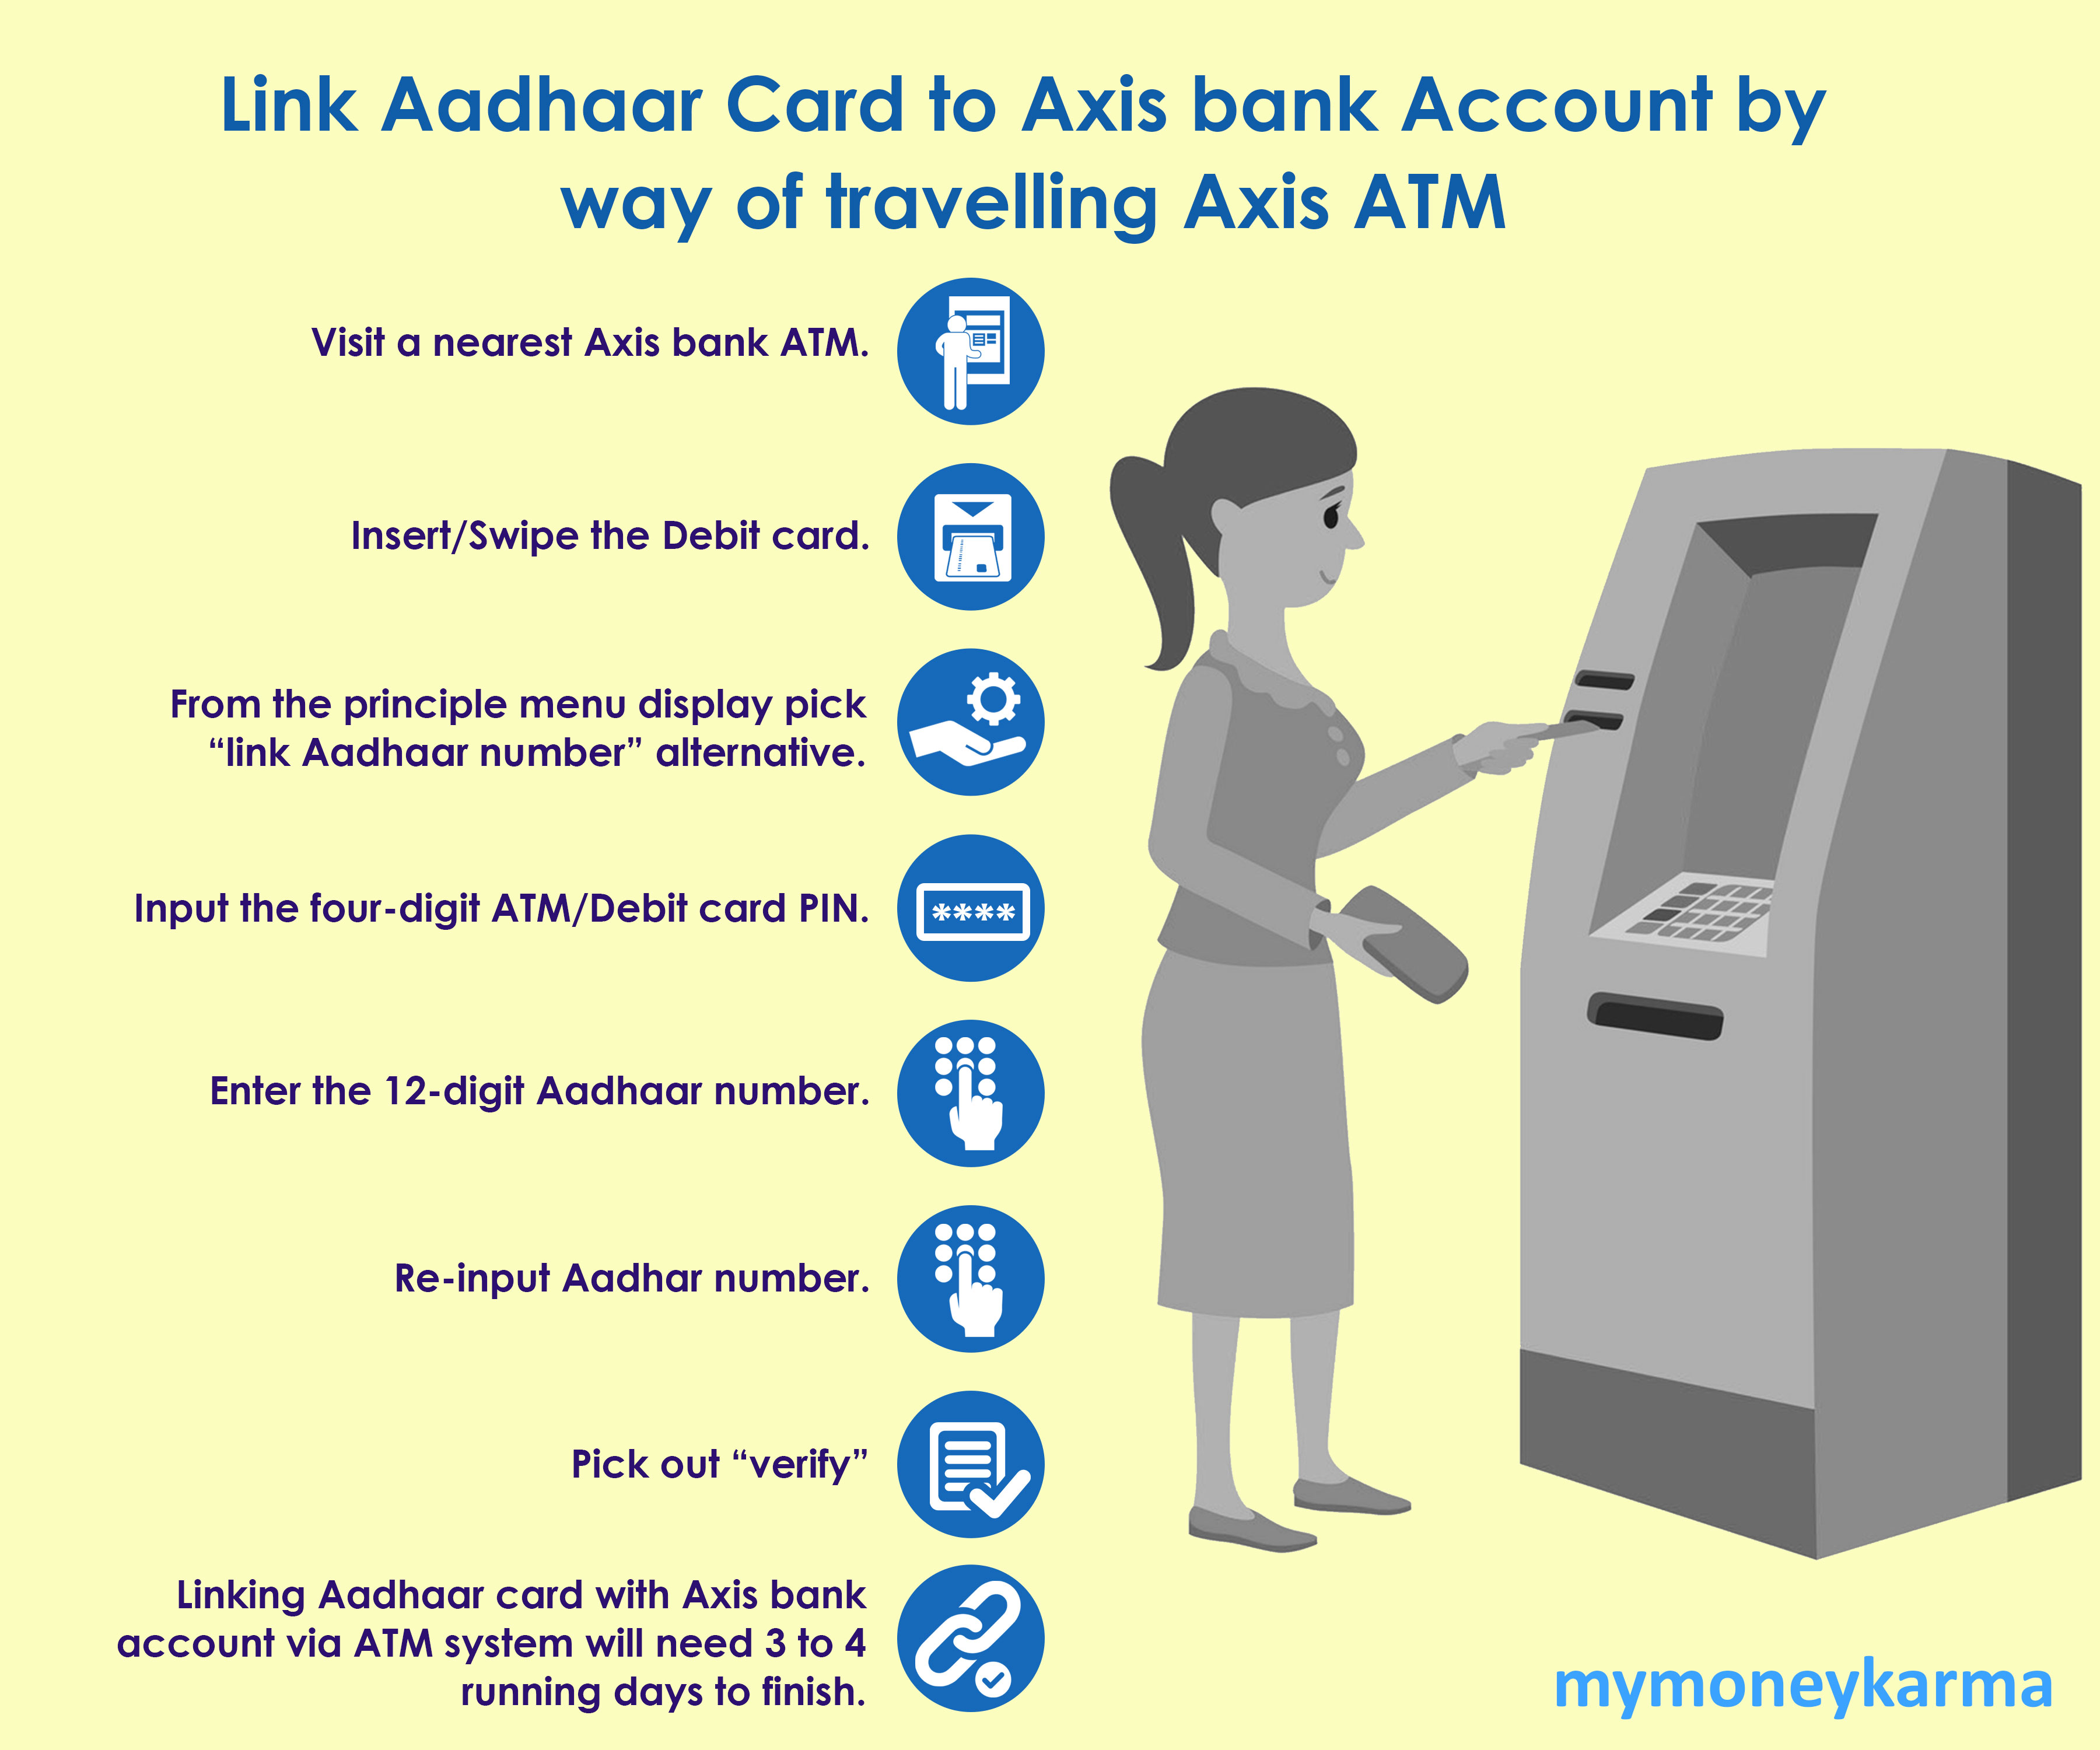 "Visit a nearest Axis bank ATM.                         Insert/Swipe the Debit card.                         From the principle menu display pick ""link Aadhaar number"" alternative.                         Input the four-digit ATM/Debit card PIN.                         Enter the 12-digit Aadhaar number.                         Re-input Aadhar number.                         Pick out ""verify"".                         Linking Aadhaar card with Axis bank account via ATM system will need 3 to 4 running days to finish."